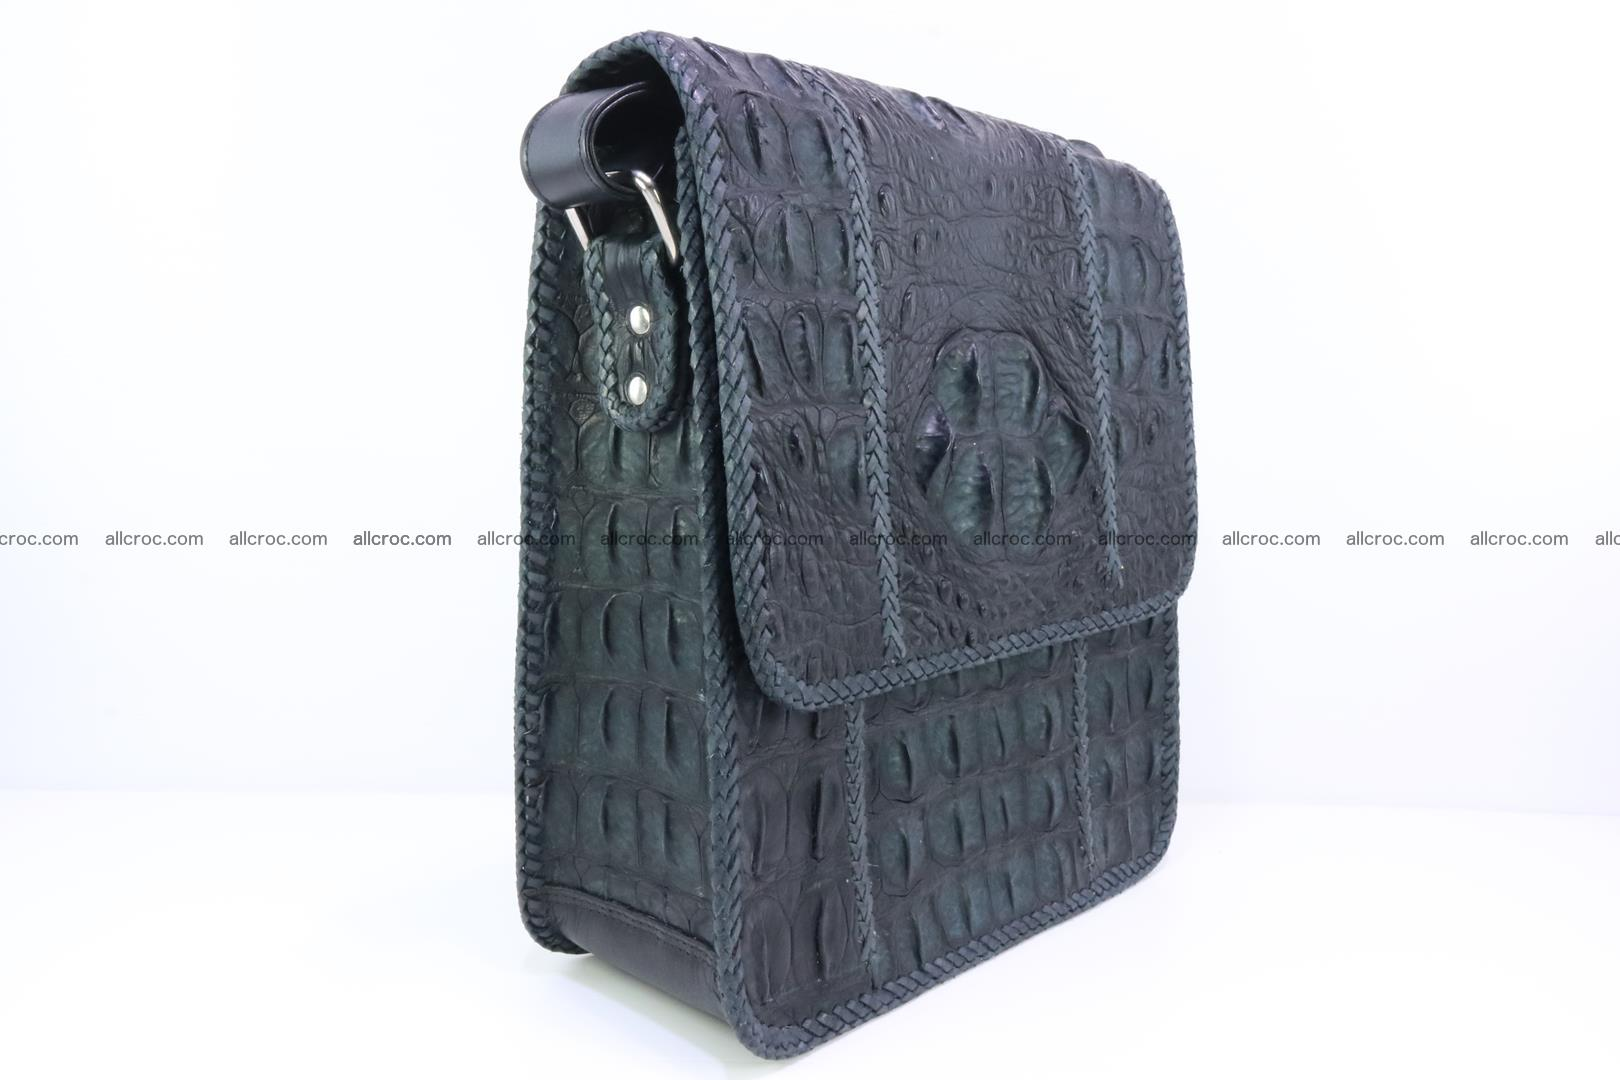 Сrocodile skin shoulder bag with braided edges 143 Foto 1